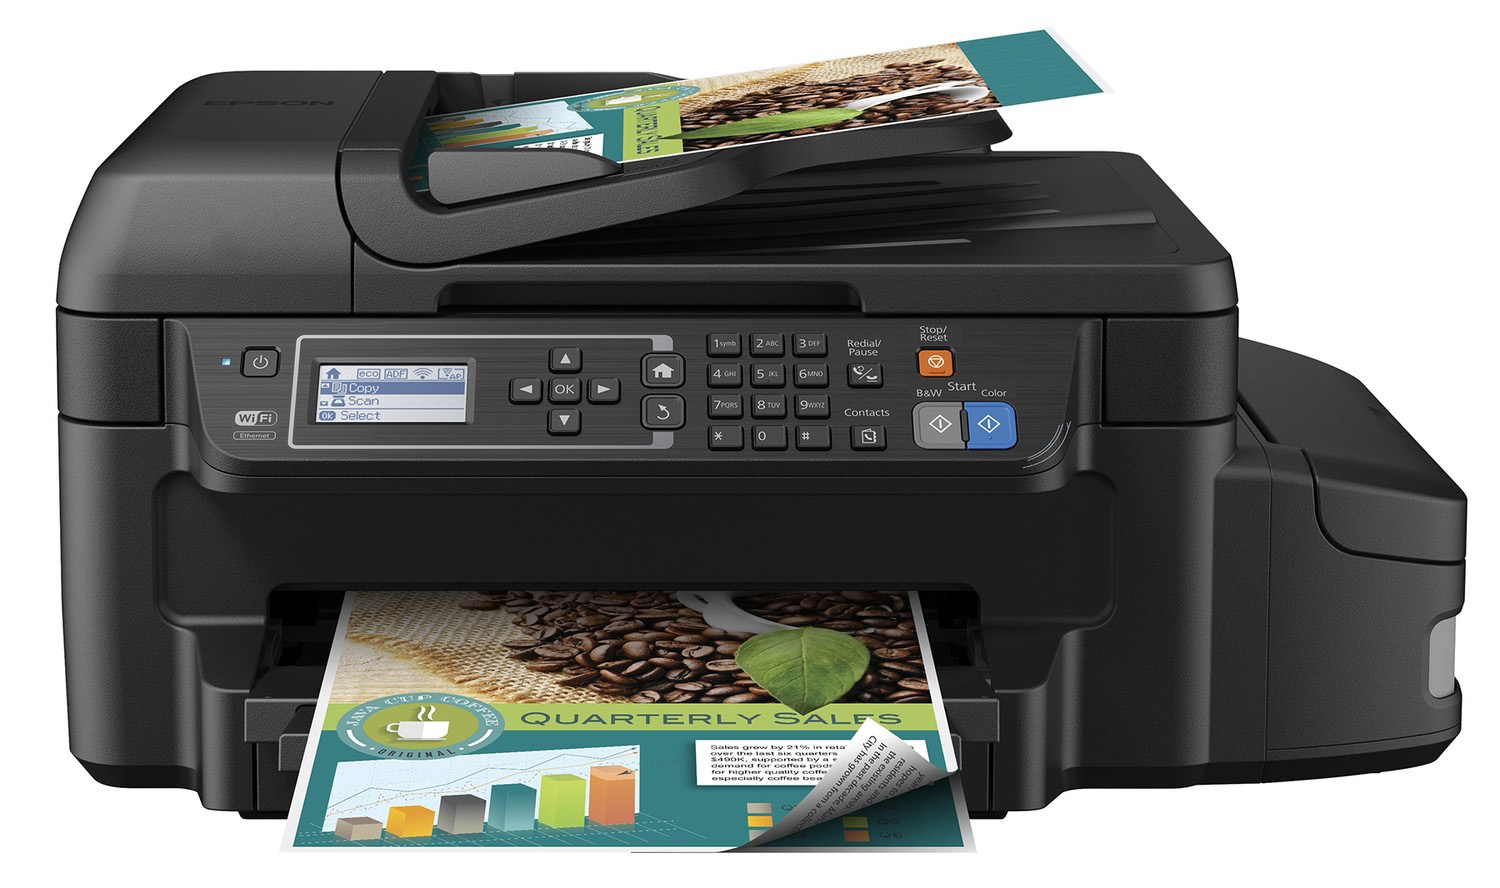 How to do Double Sided Scanning on Epson Printer | Printer